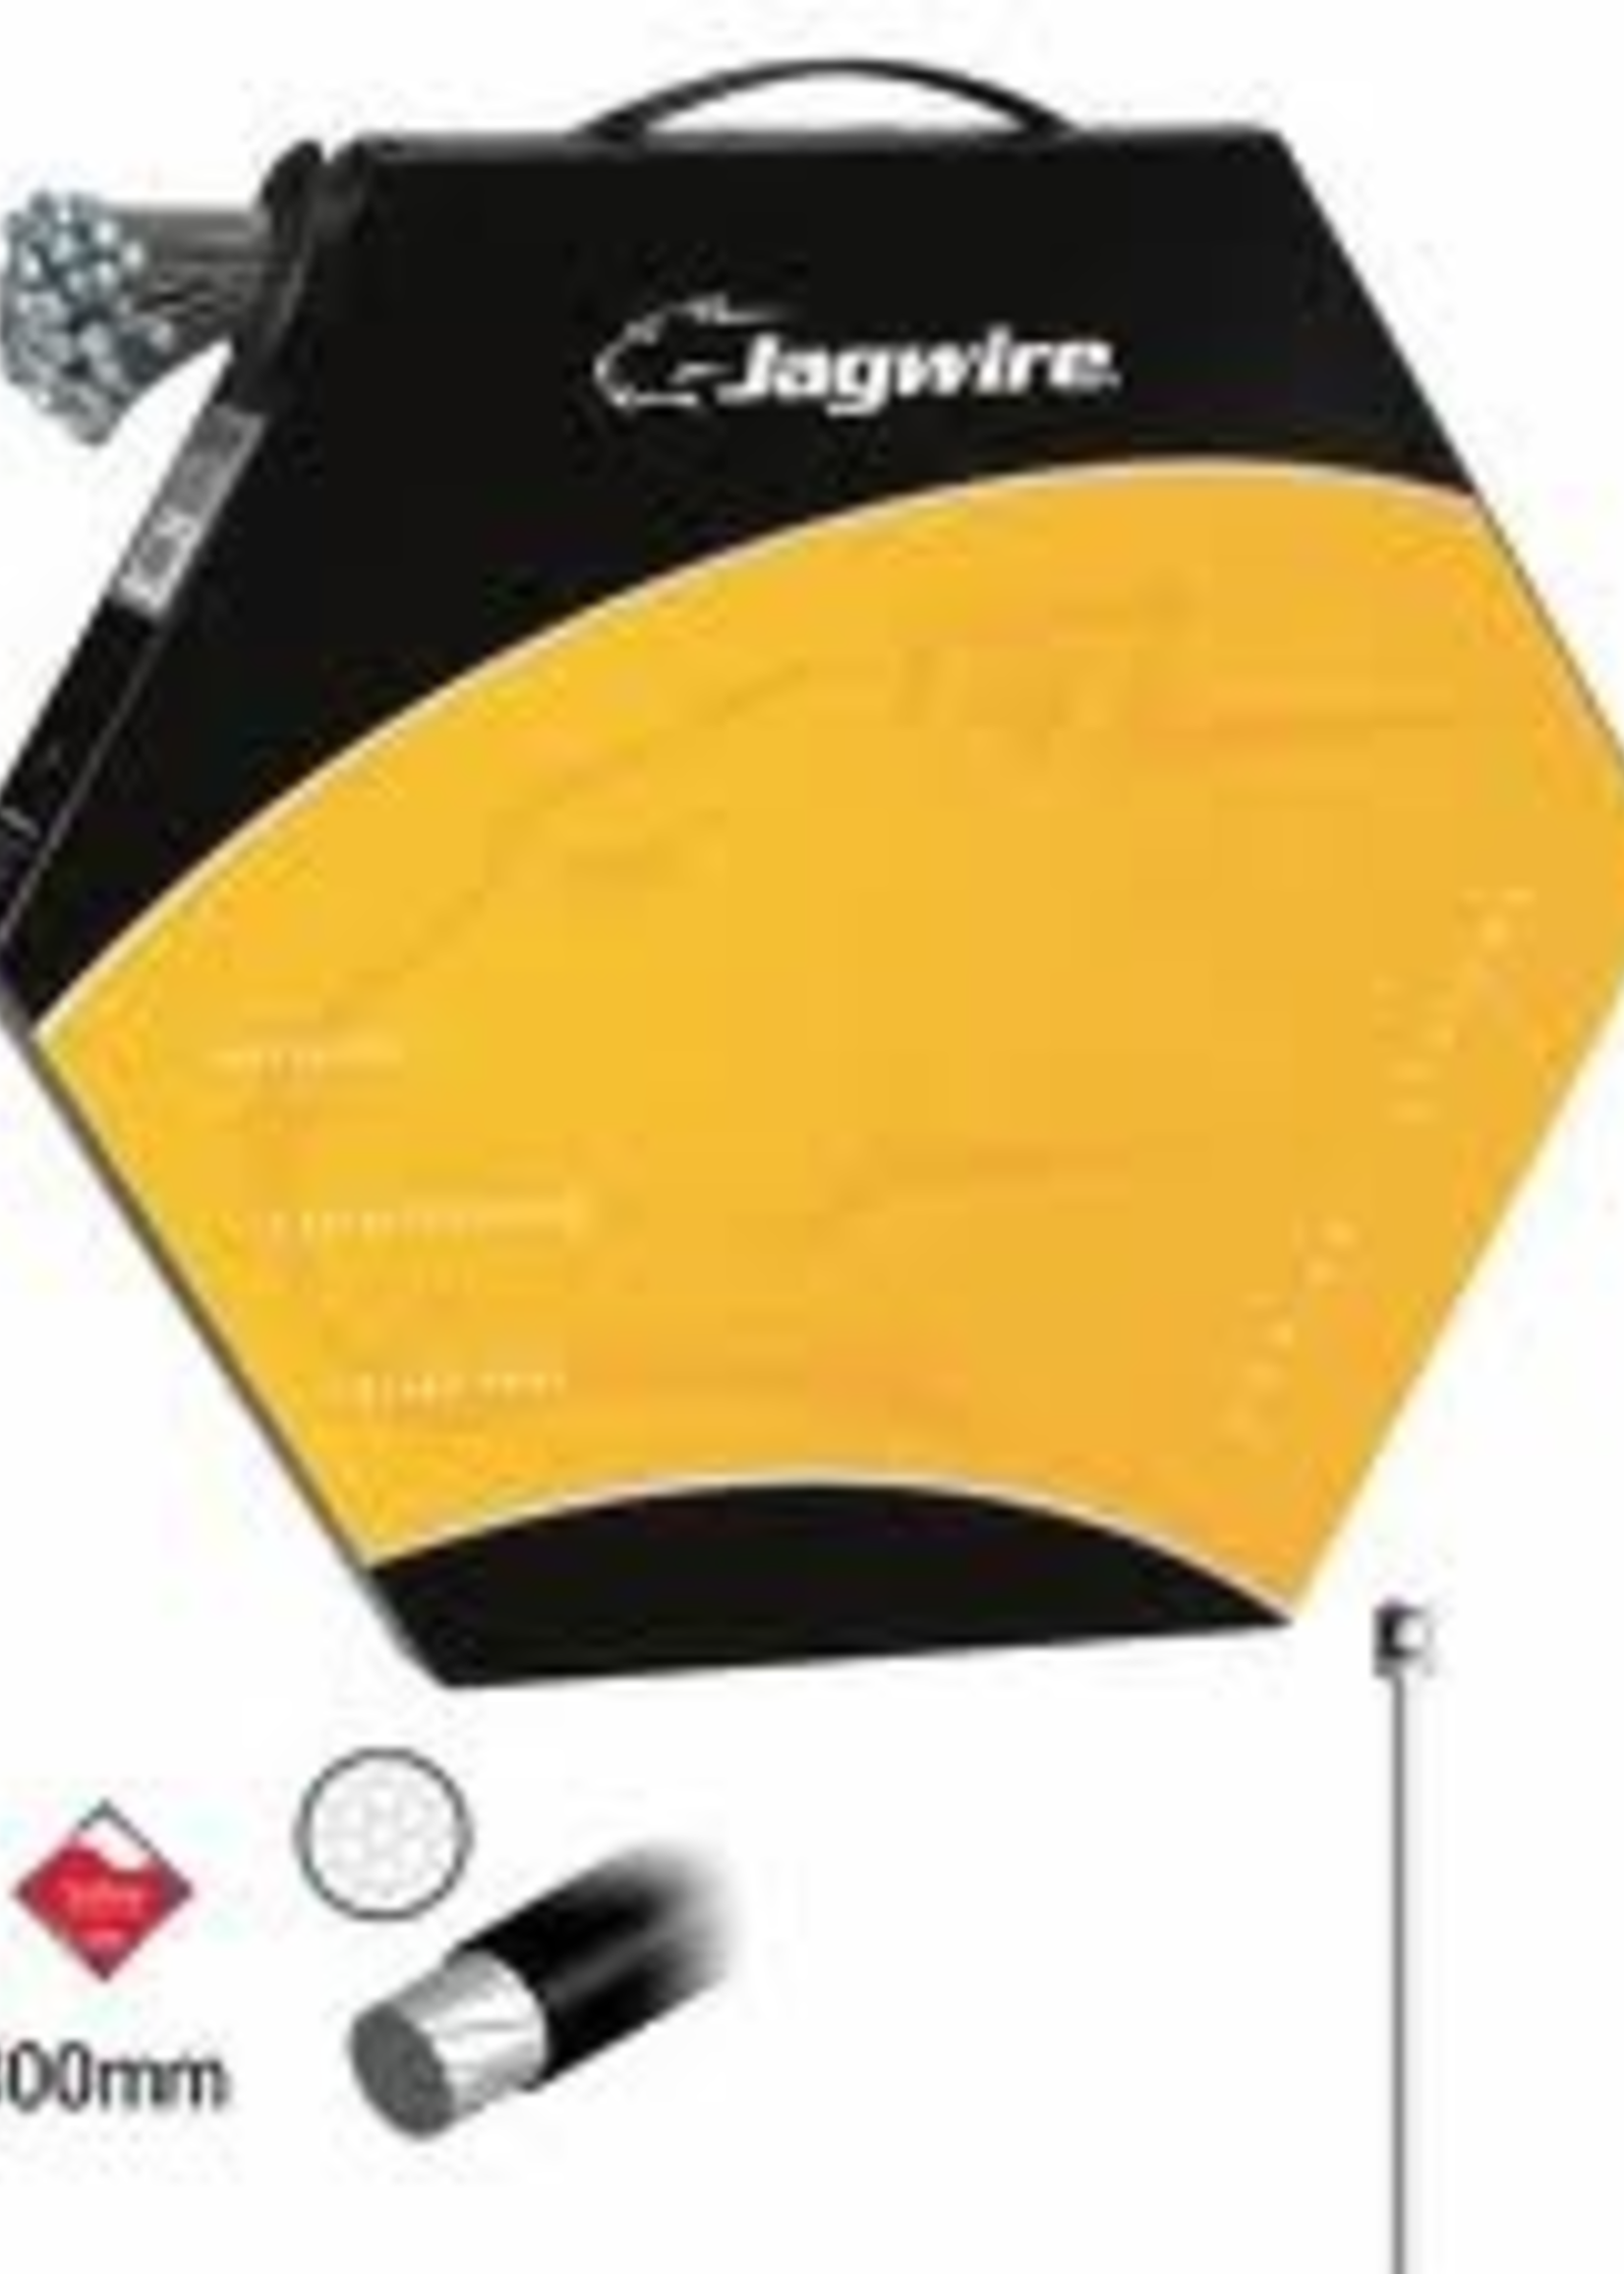 Jagwire JAGWIRE SHIFT STAINLESS CABLE